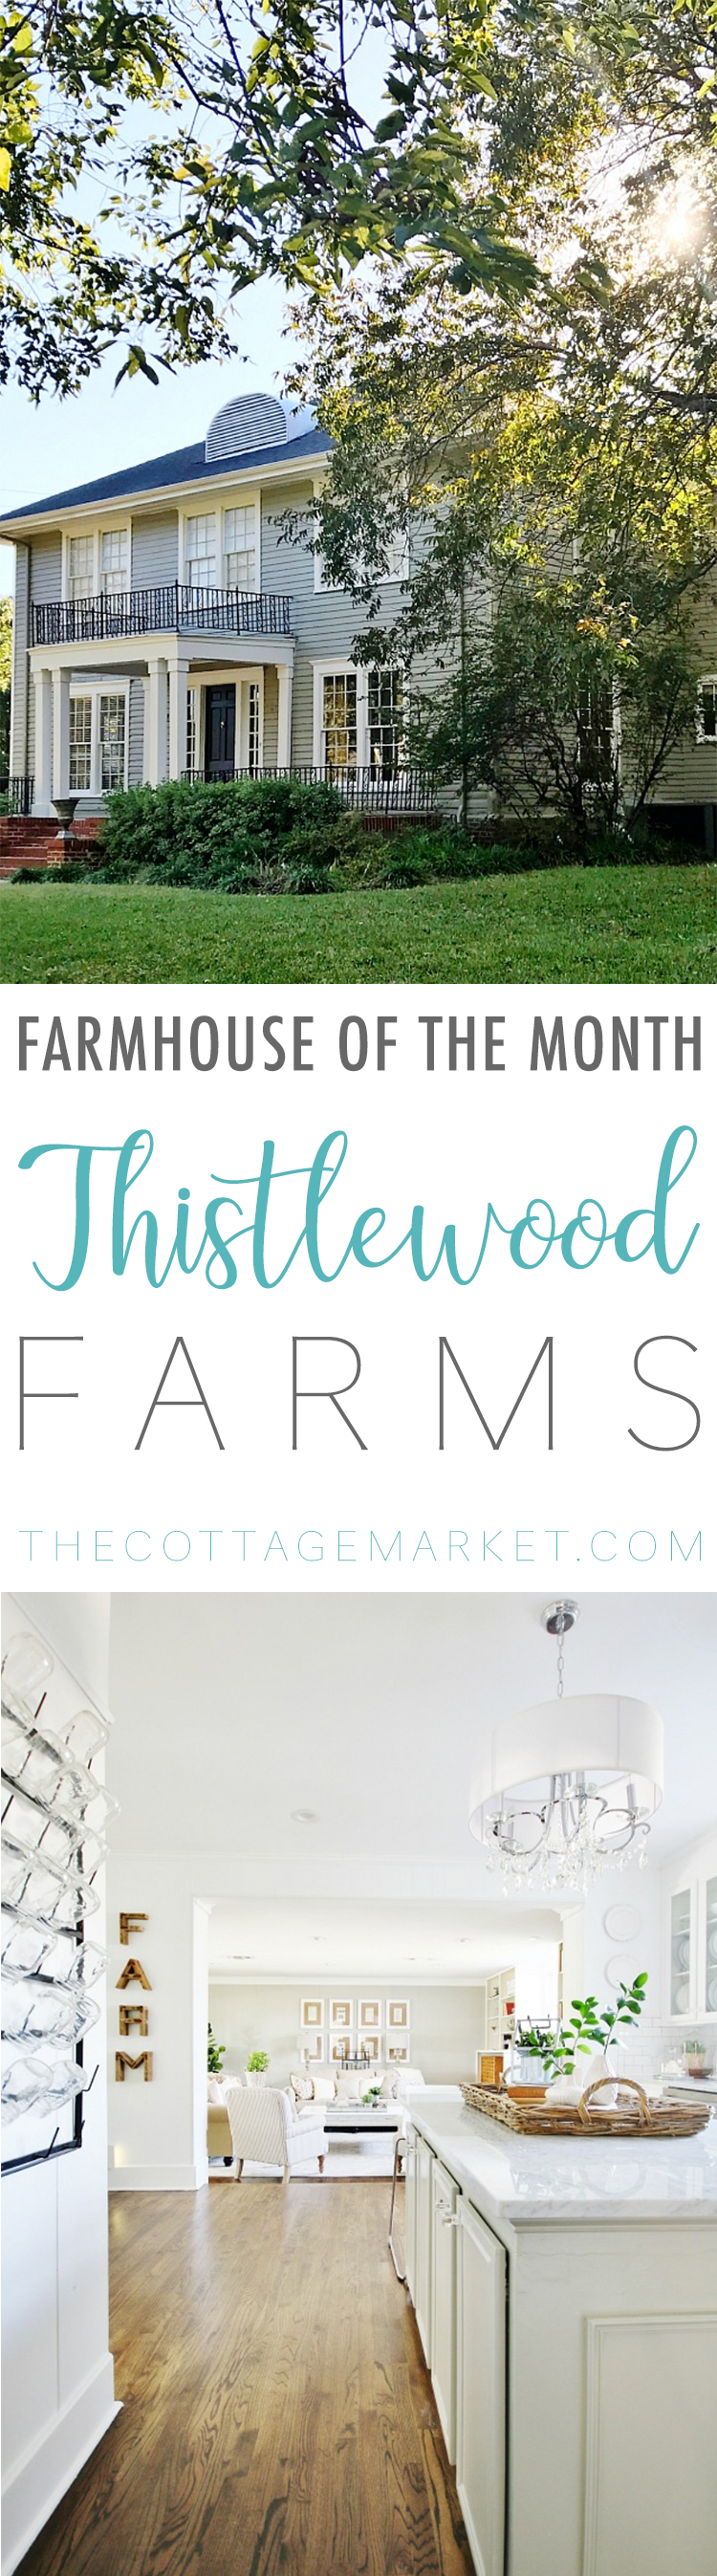 This farmhouse of the month feature is full of decor inspiration.